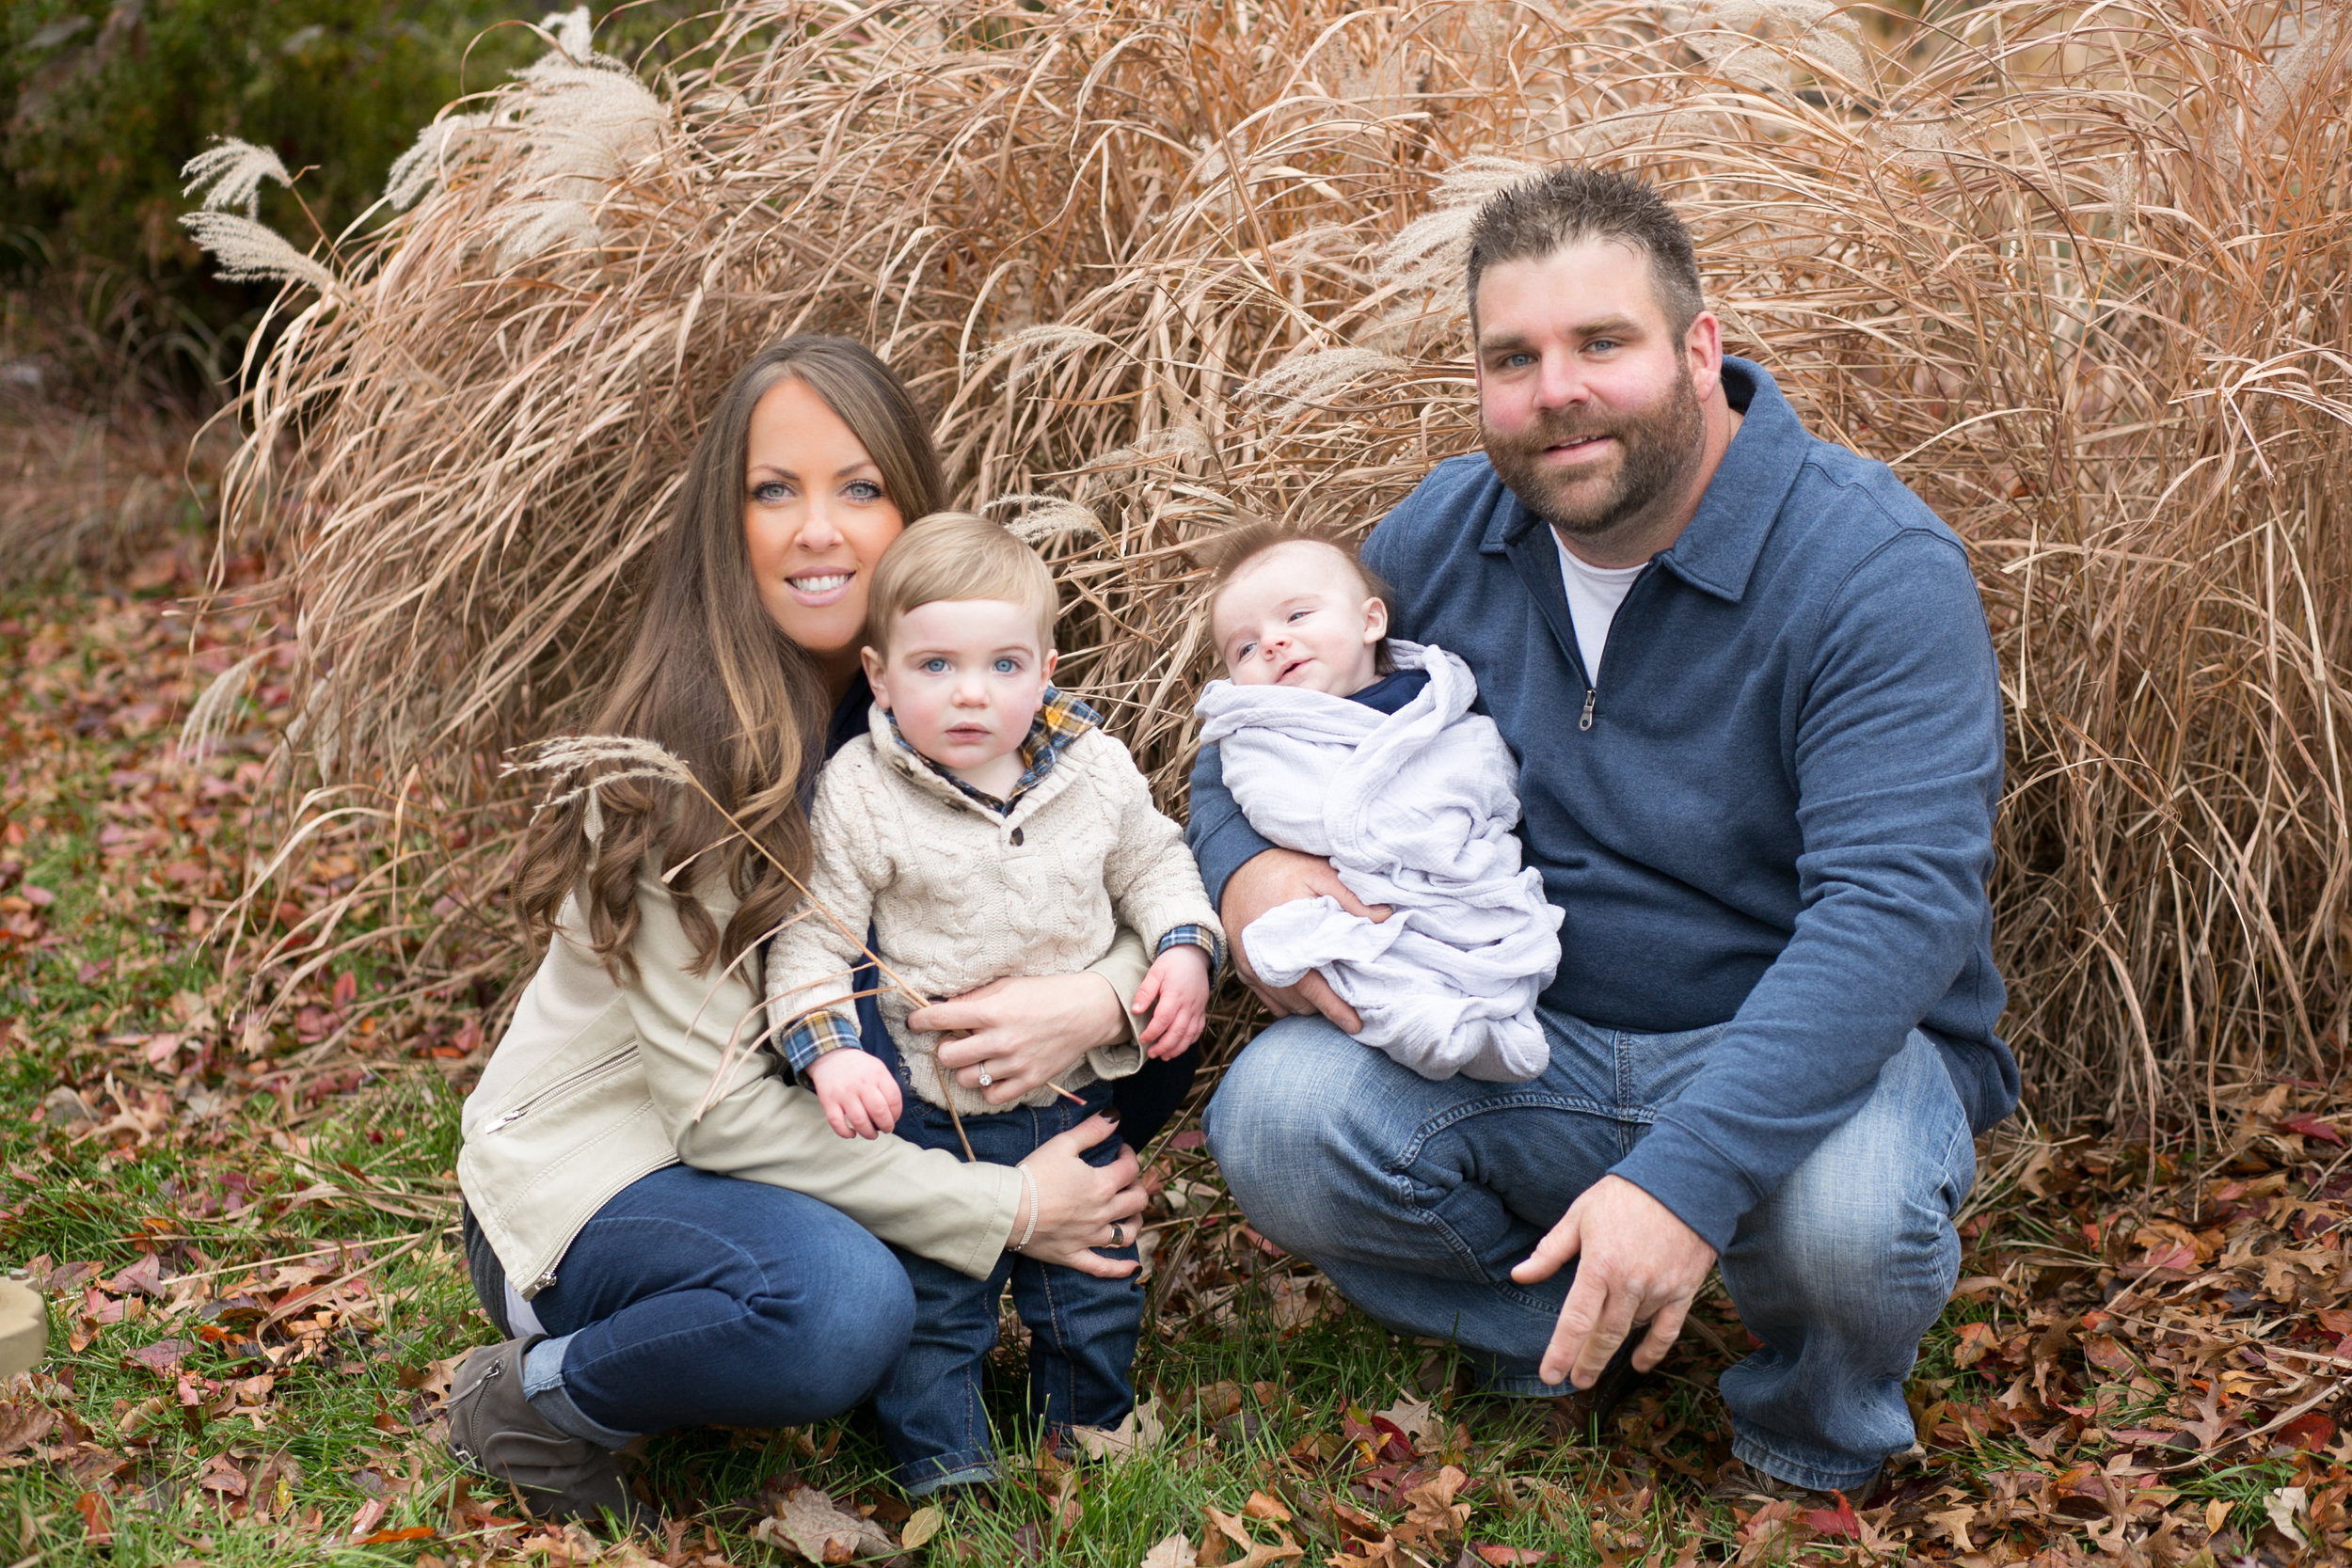 Blaine-Family-Photography (26 of 27).jpg